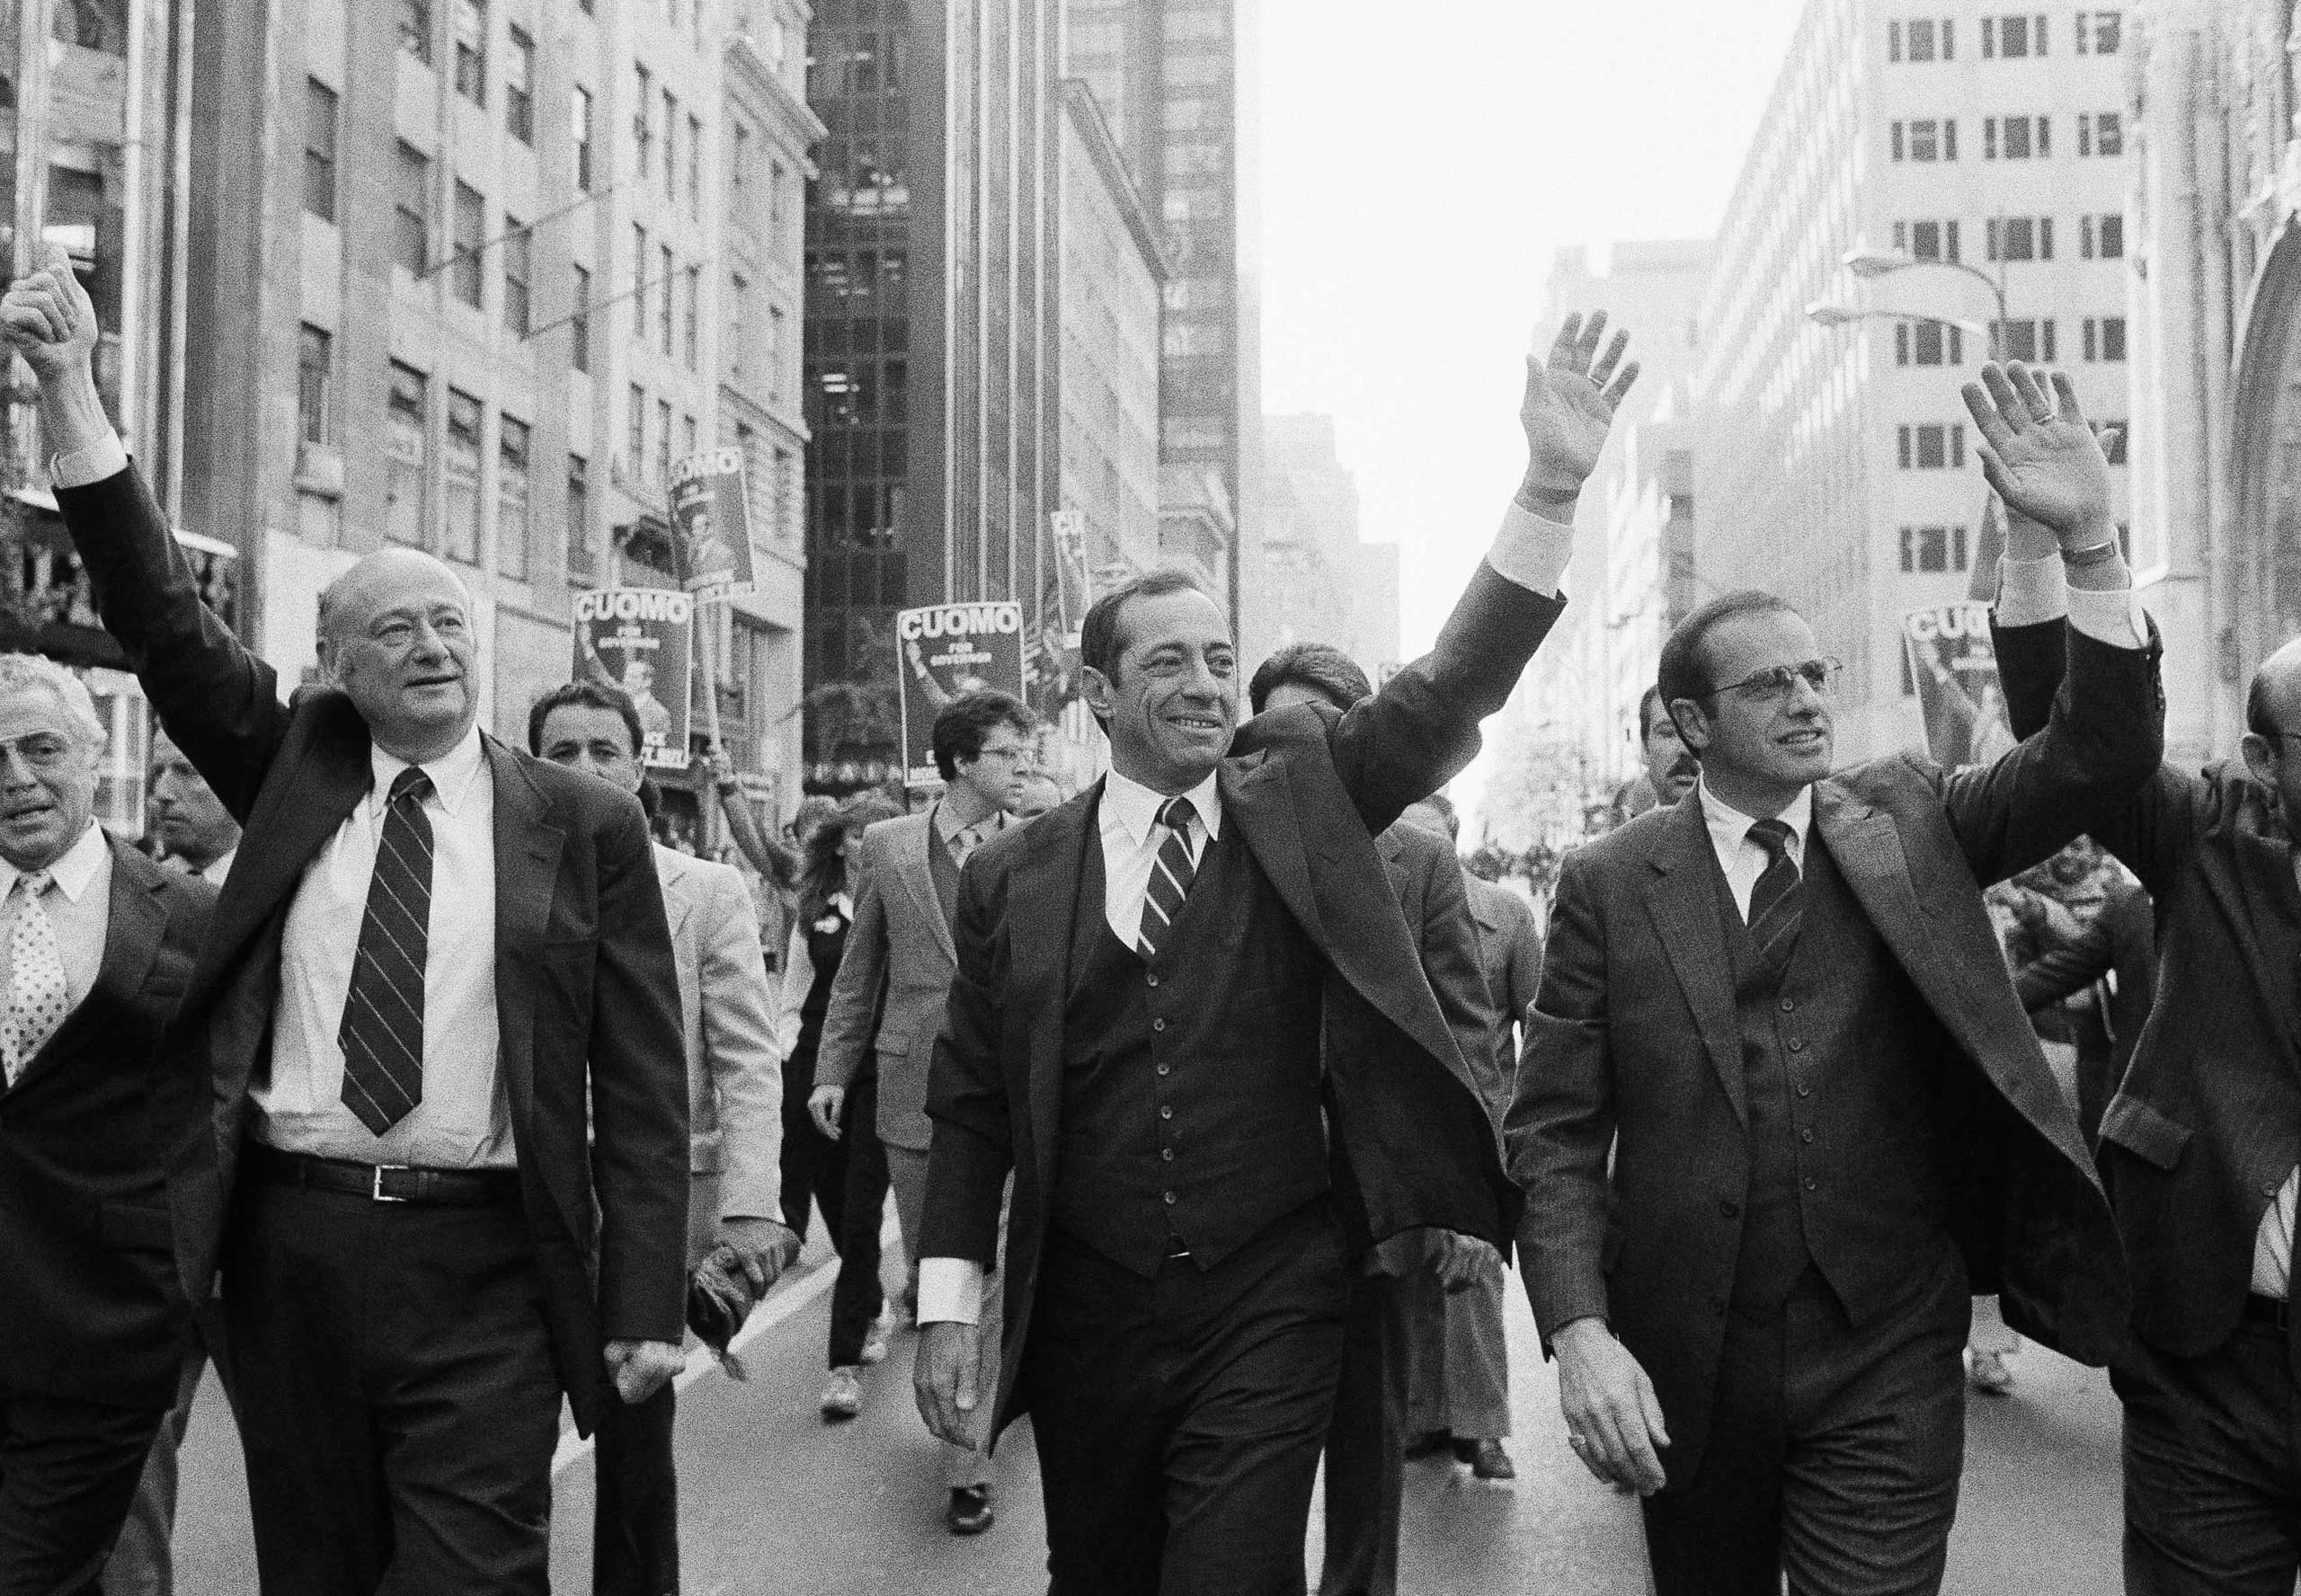 Marching down New York's Fifth Avenue during the Columbus Day Parade are (from left:) Congressman Mario Biaggi, New York City Mayor Edward Koch, Lt. Gov. Mario Cuomo and Westchester County Executive Alfred DelBello in New York City on Oct. 11, 1982.